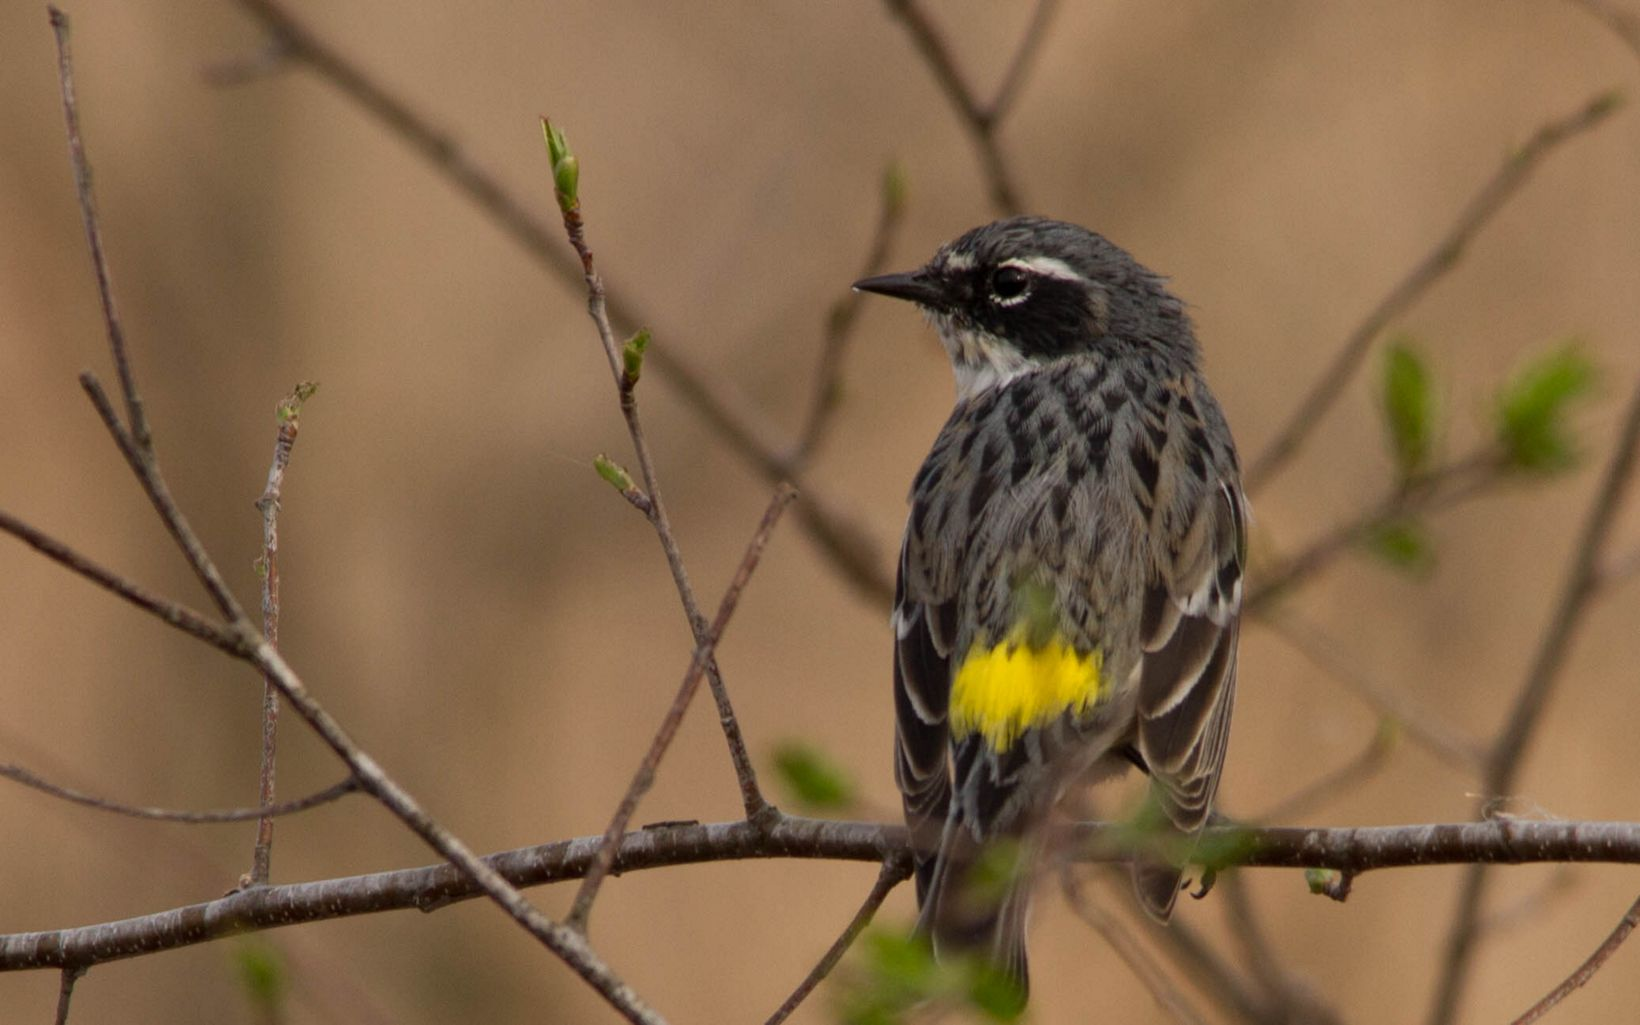 A bird with a yellow tail rests on a branch.